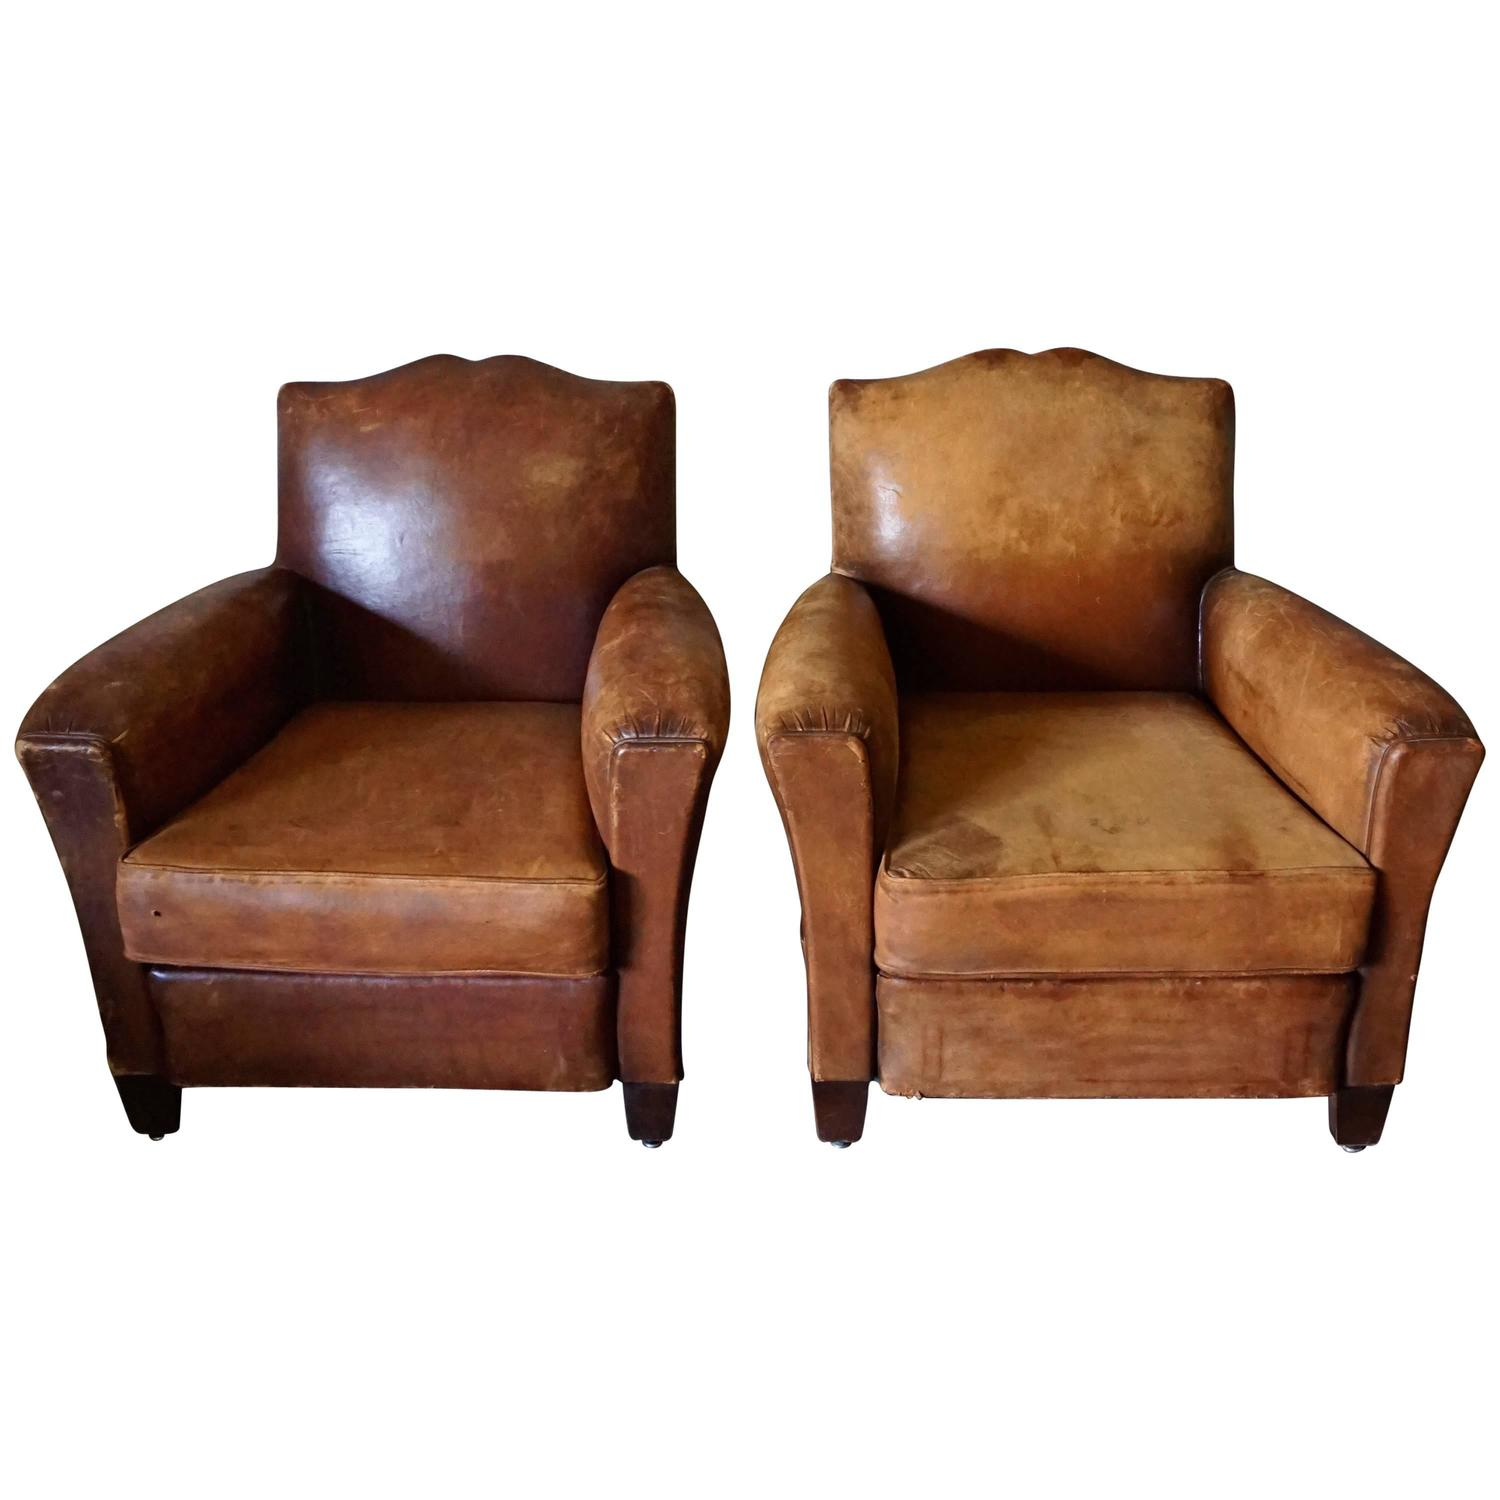 Distressed Pair of Art Deco French Cognac Leather Club